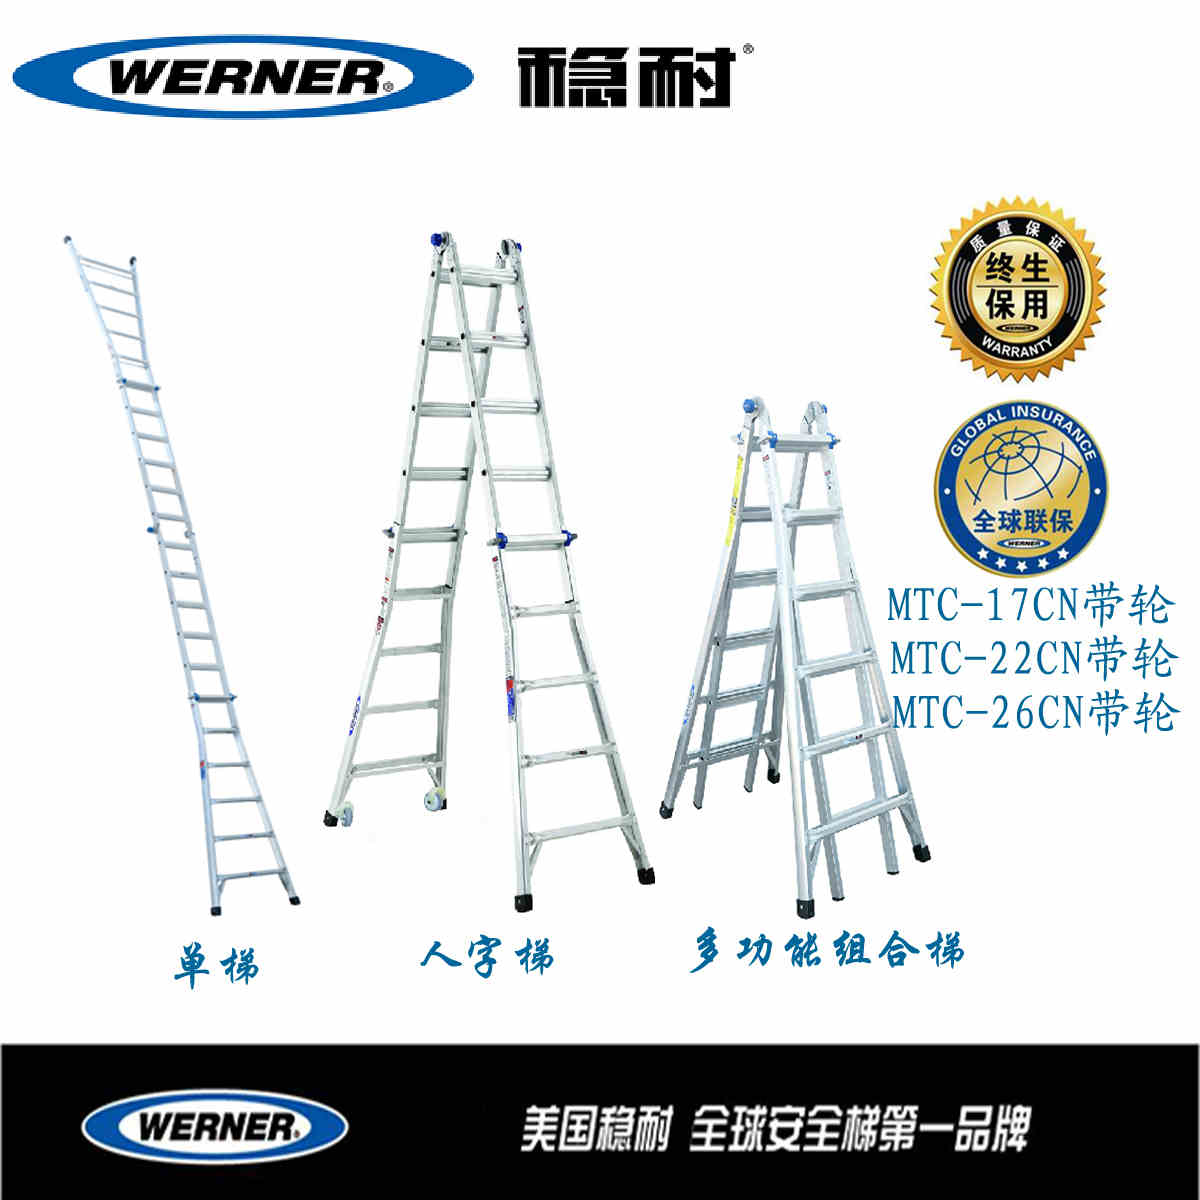 Us household ladder thicker aluminum ladder engineering ladder steady resistance MTC-22CN multifunctional telescopic ladder folding shipping